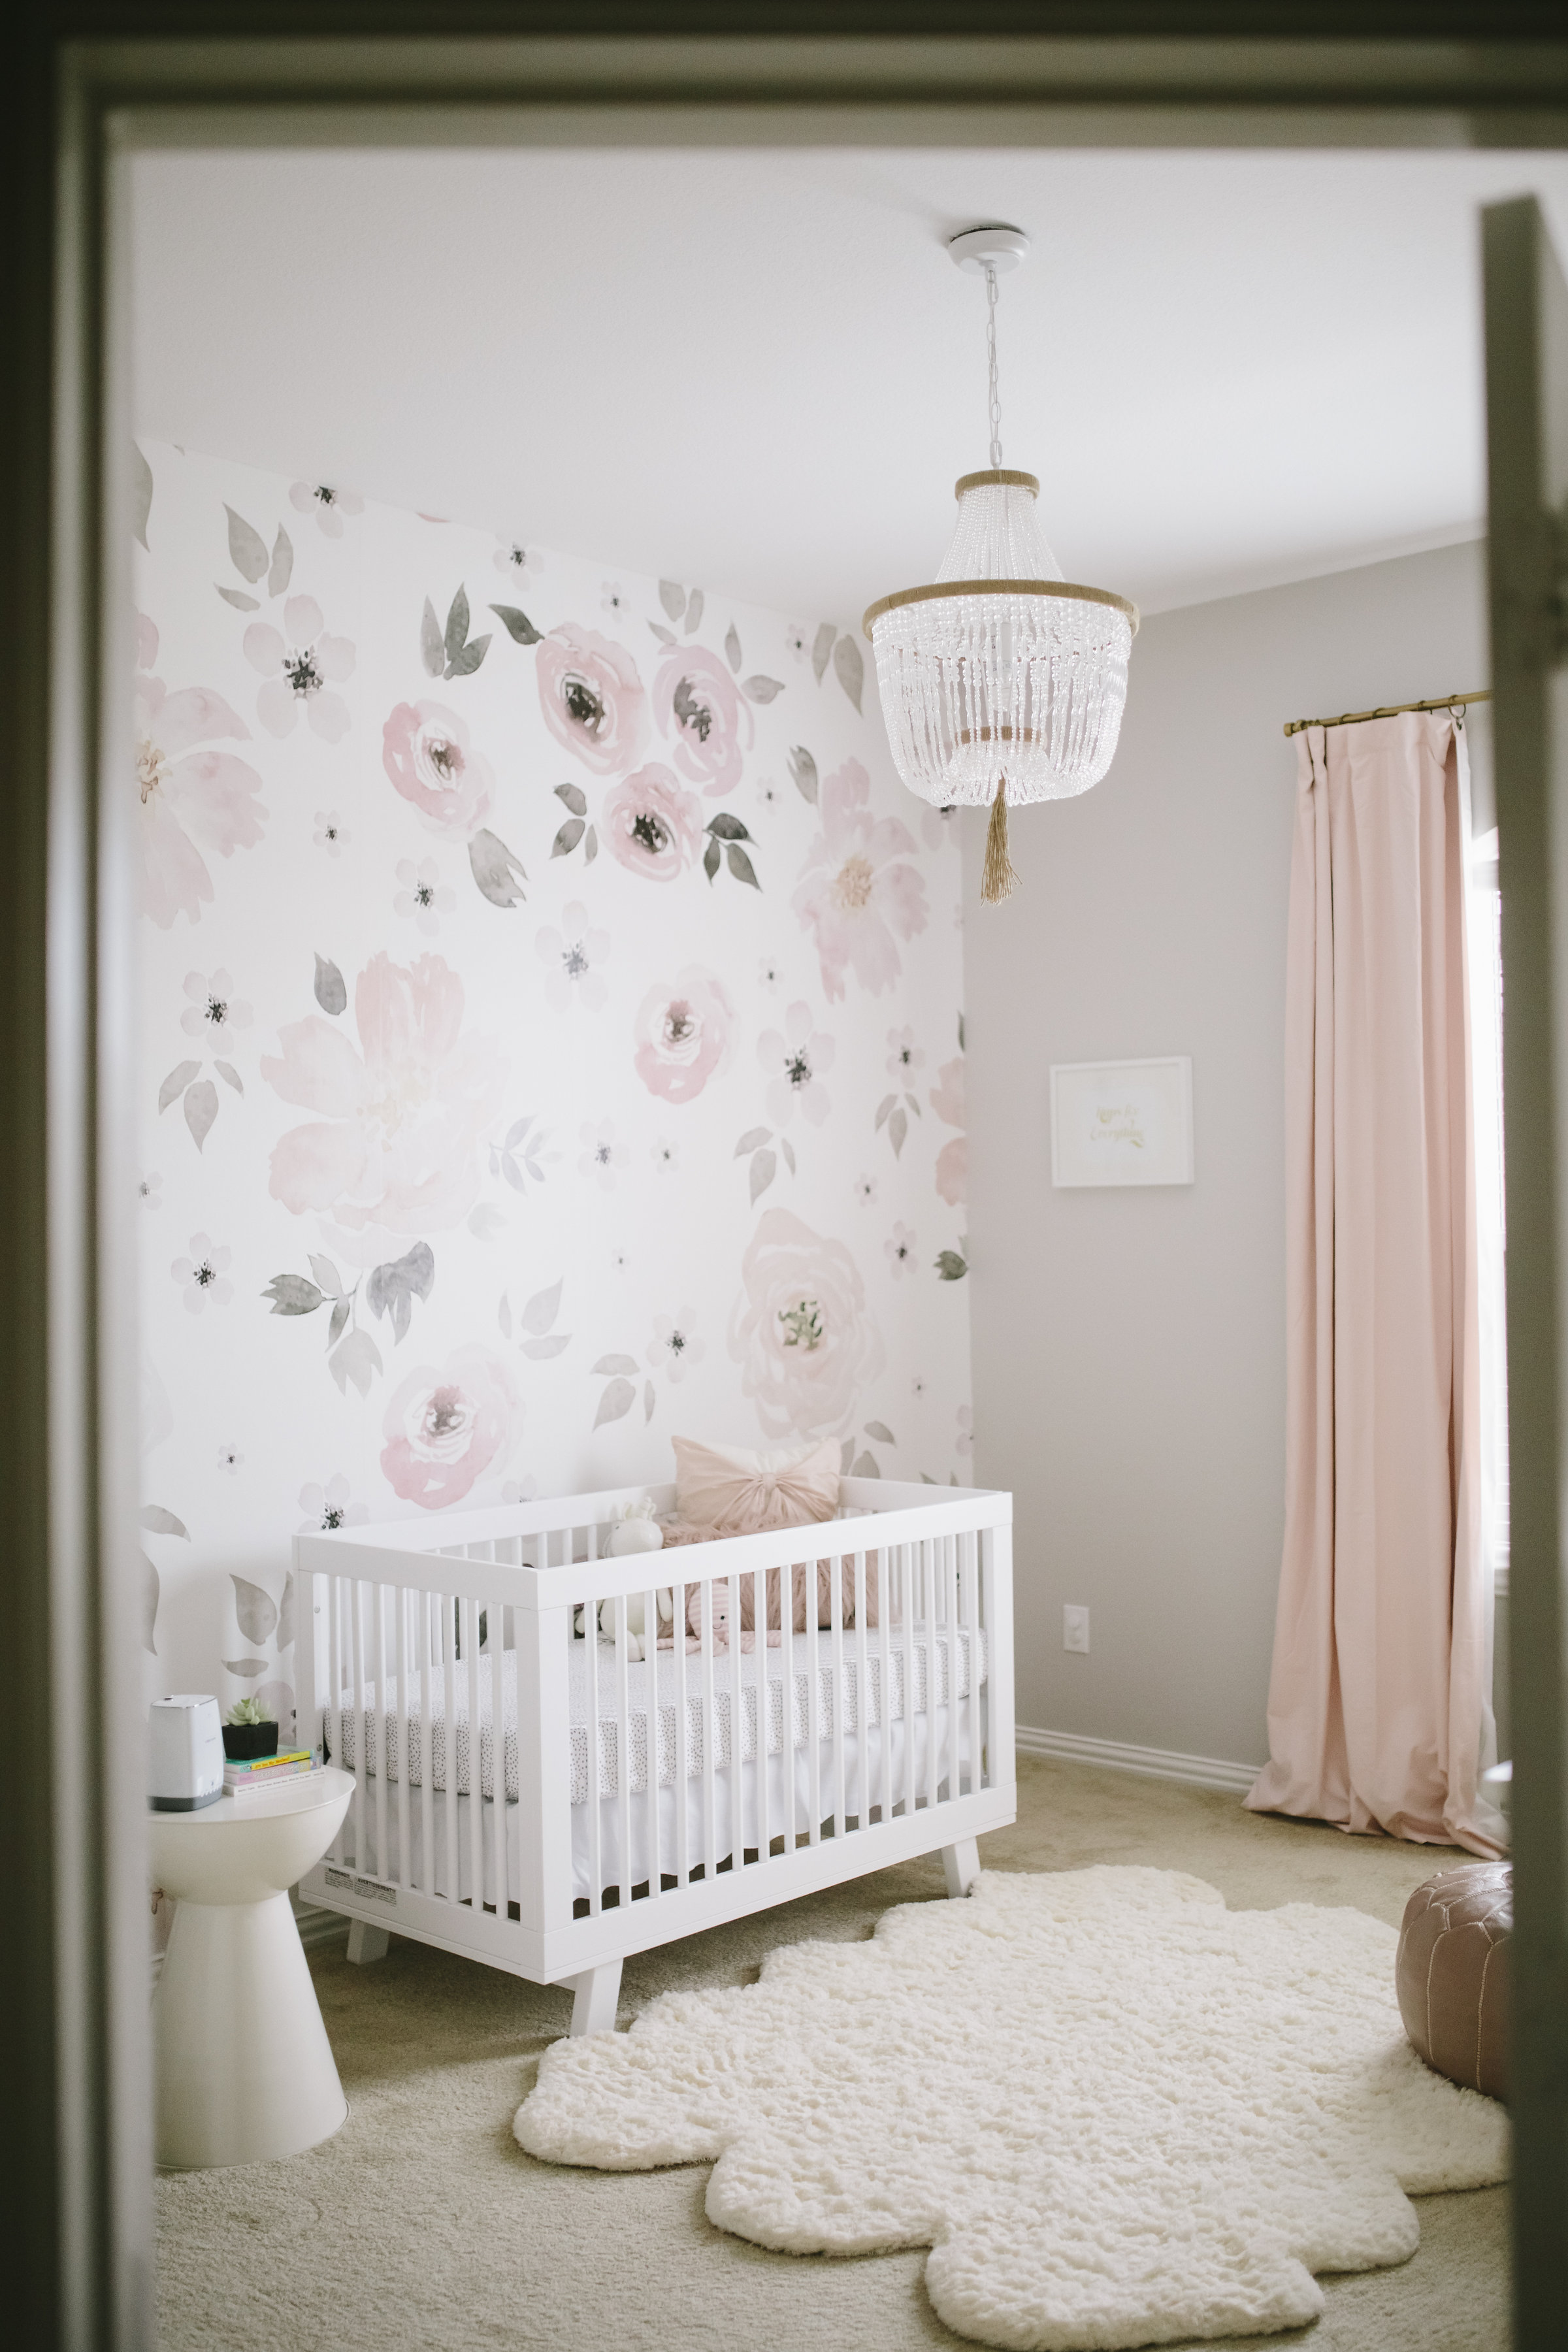 Toddler Girl Bedroom Wallpaper Harper S Floral Whimsy Nursery Project Nursery